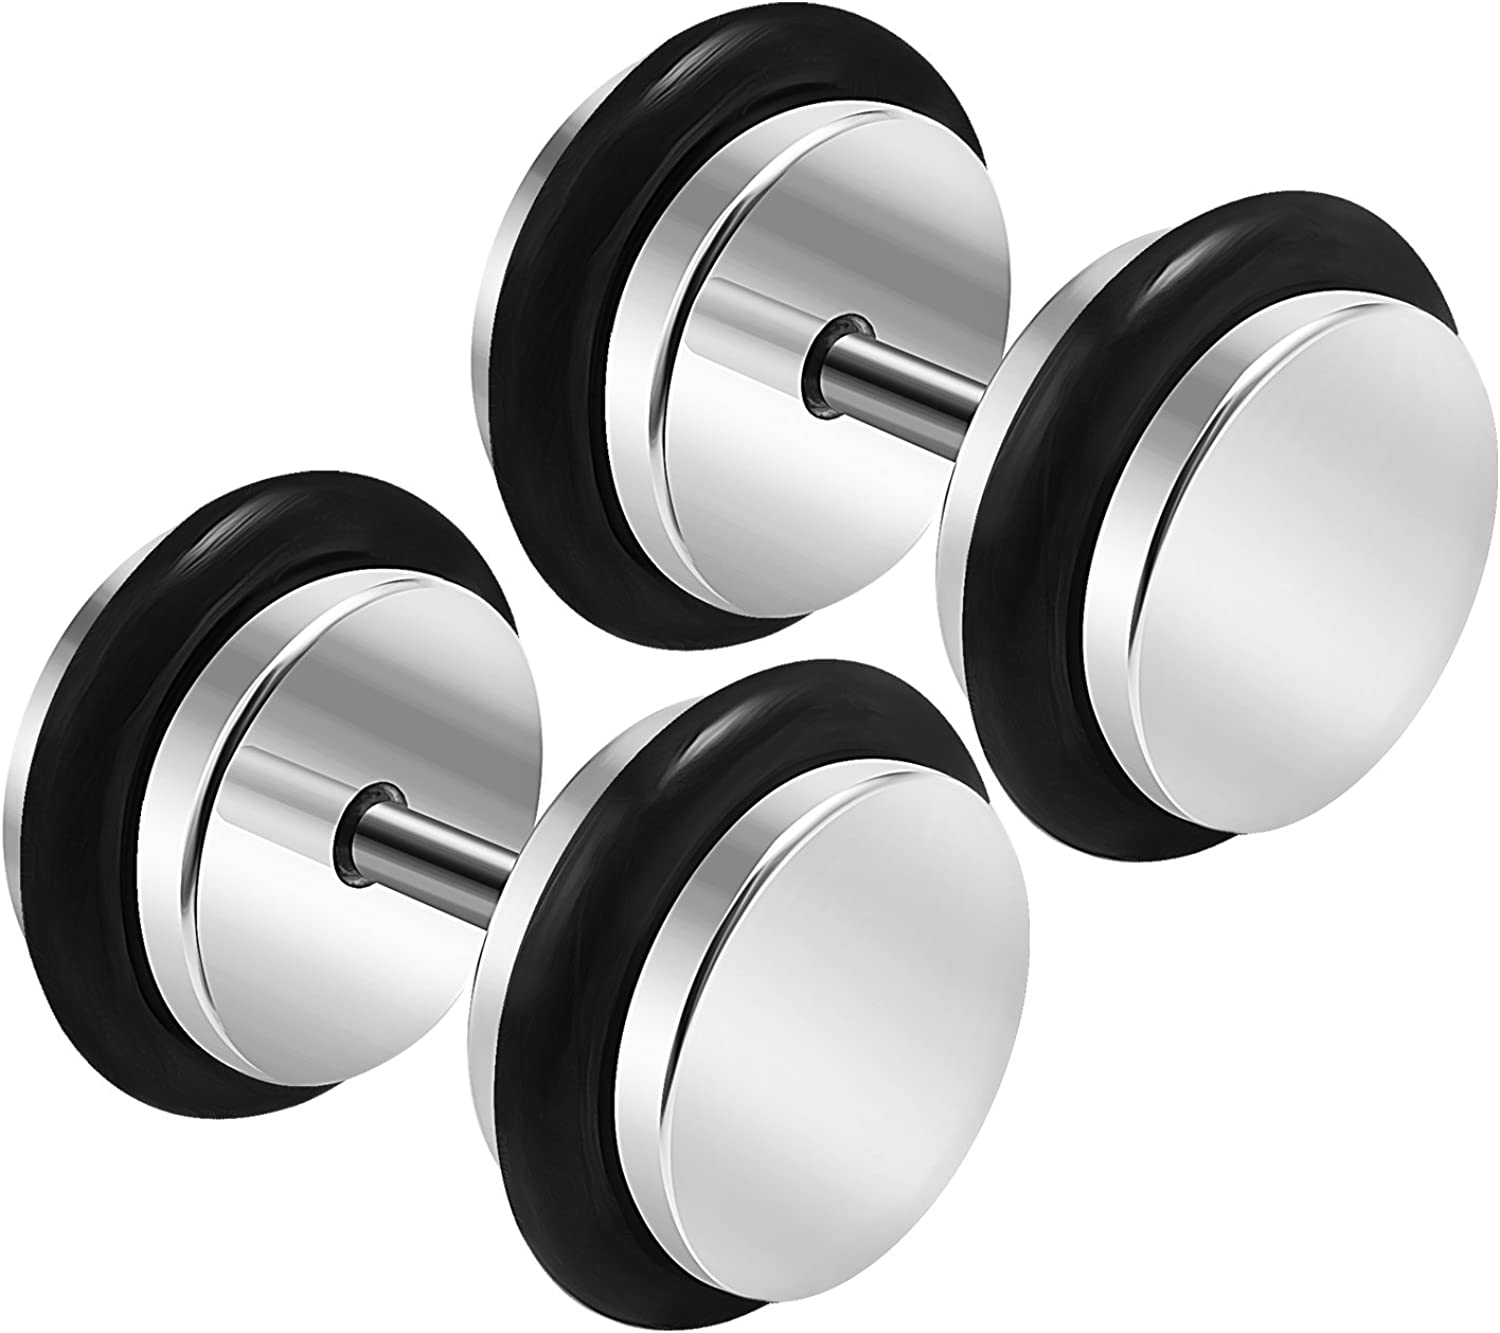 BanaVega 2PCS Stainless Steel 16g 1.2mm Black O-Rings Cheater Plug Earring Illusion Gauge Ear Lobe Piercing Jewelry See More Sizes